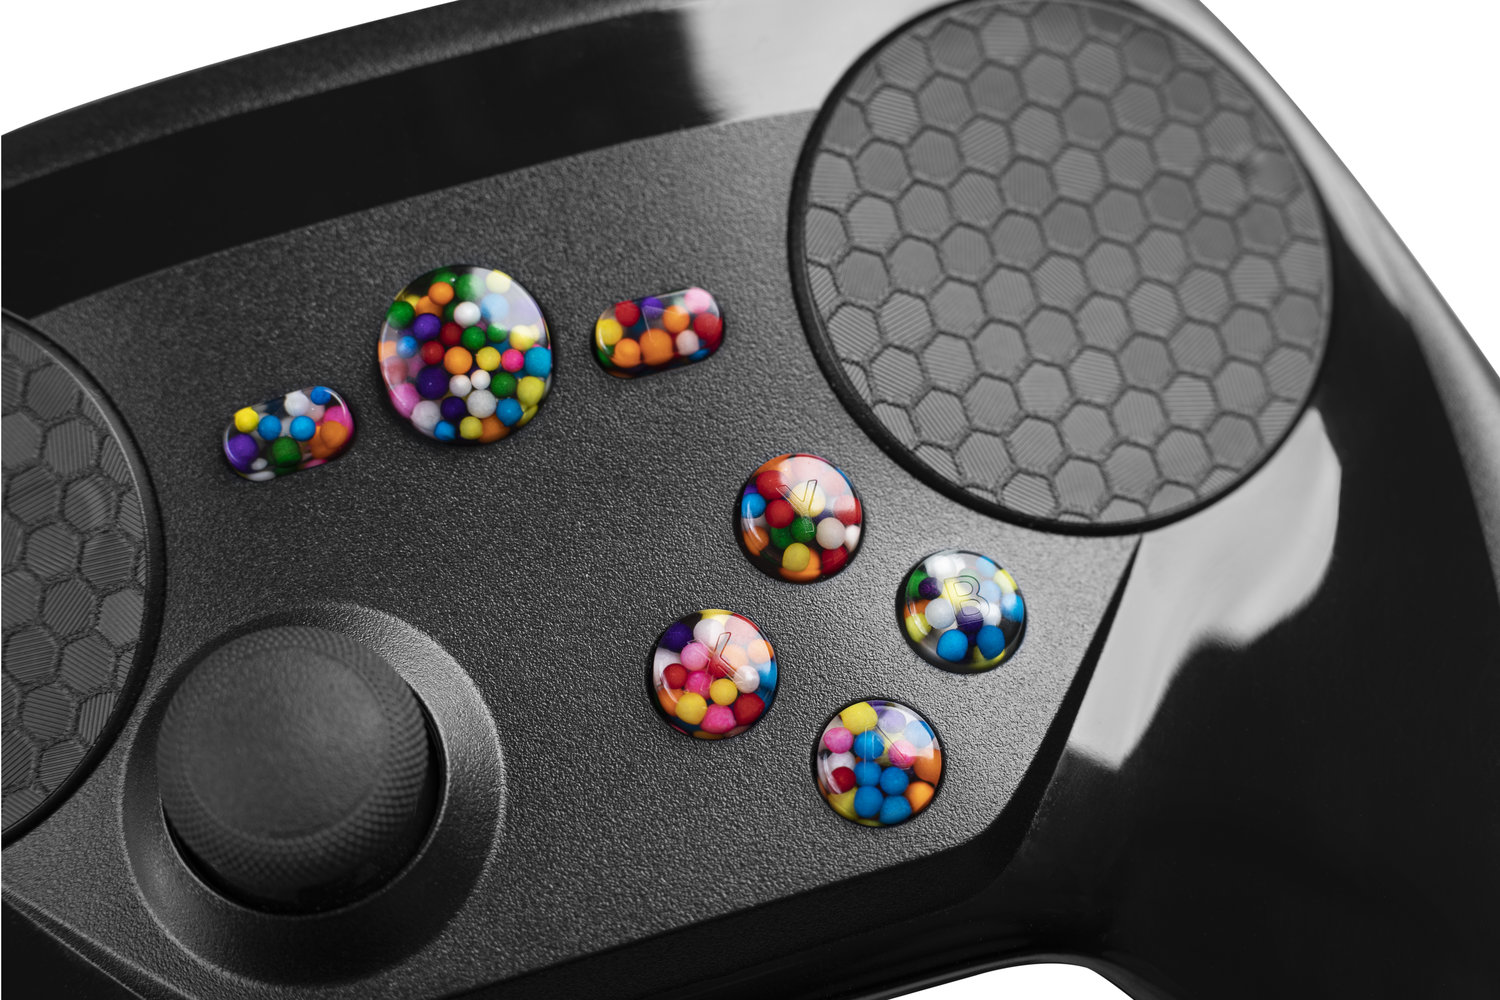 The world's ONLY Custom Buttons for the Steam Controller